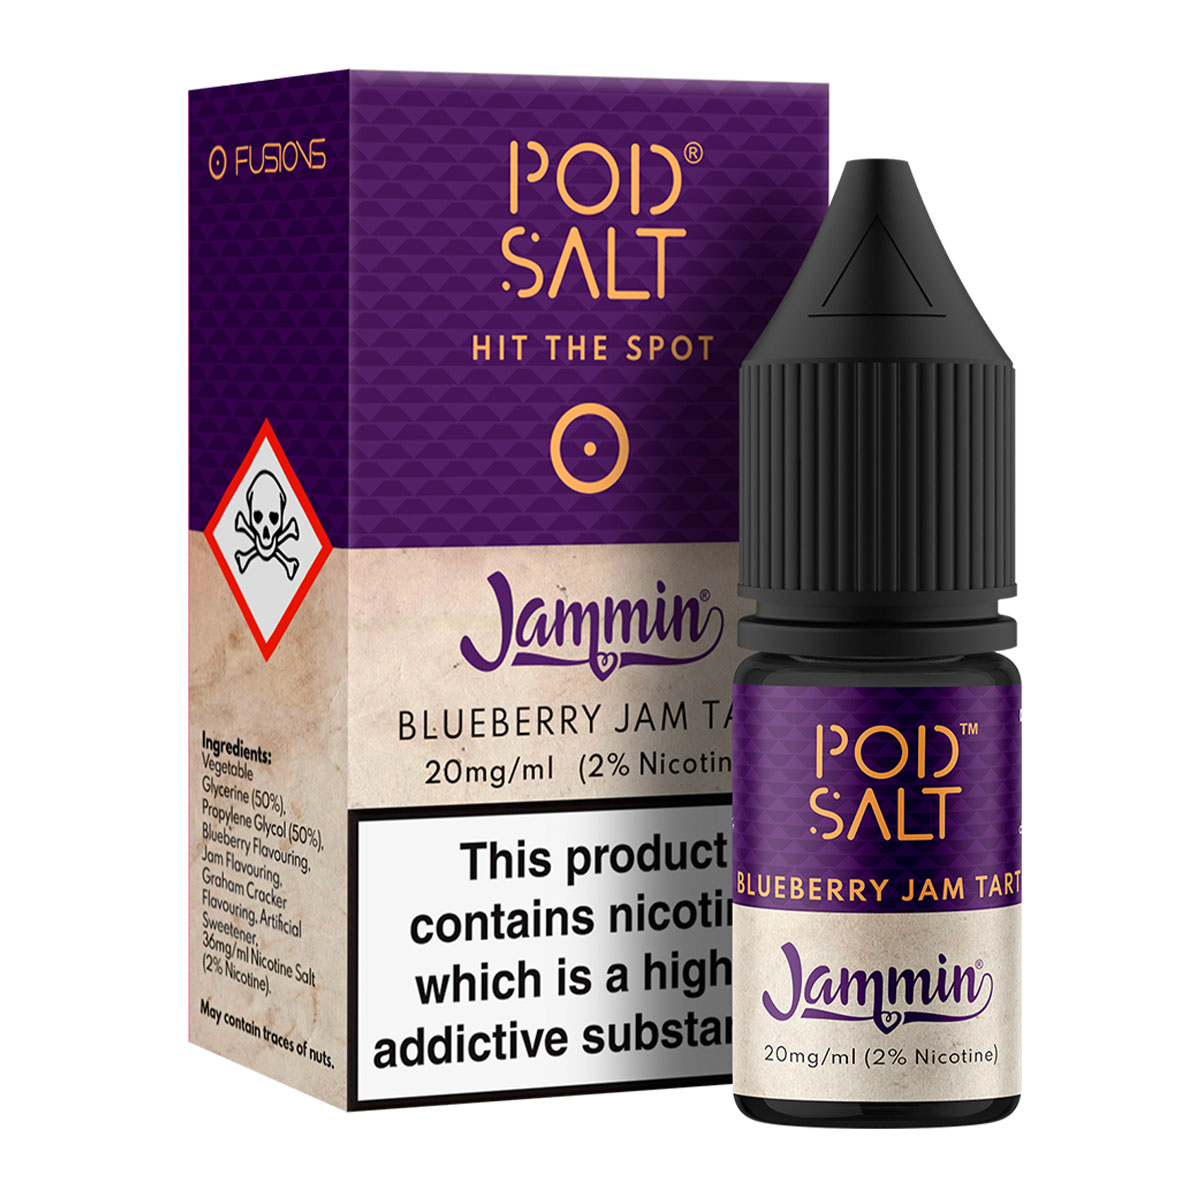 BLUEBERRY JAM TART - JAMMIN BY POD SALT